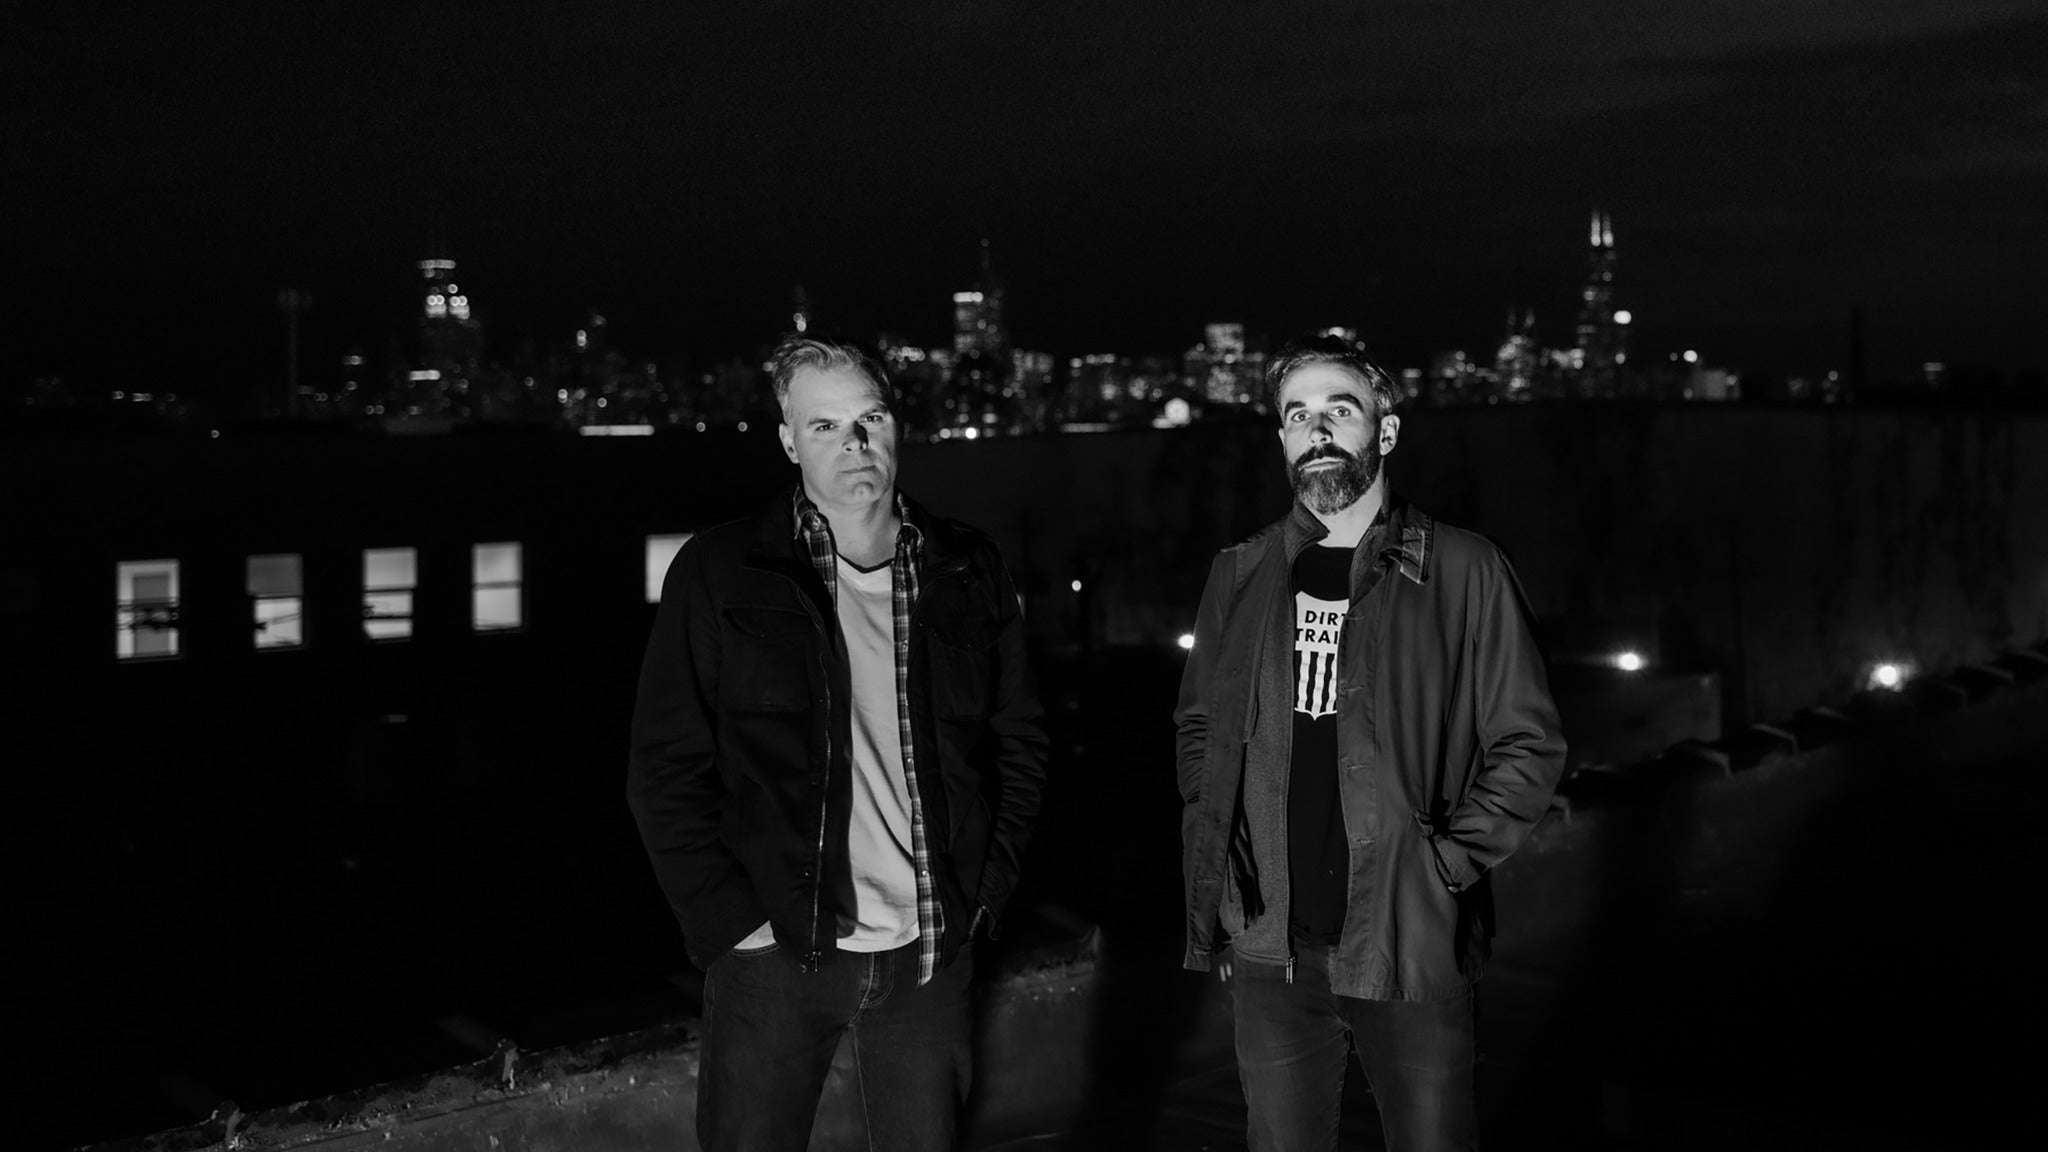 105.7 The Point Presents: Local H